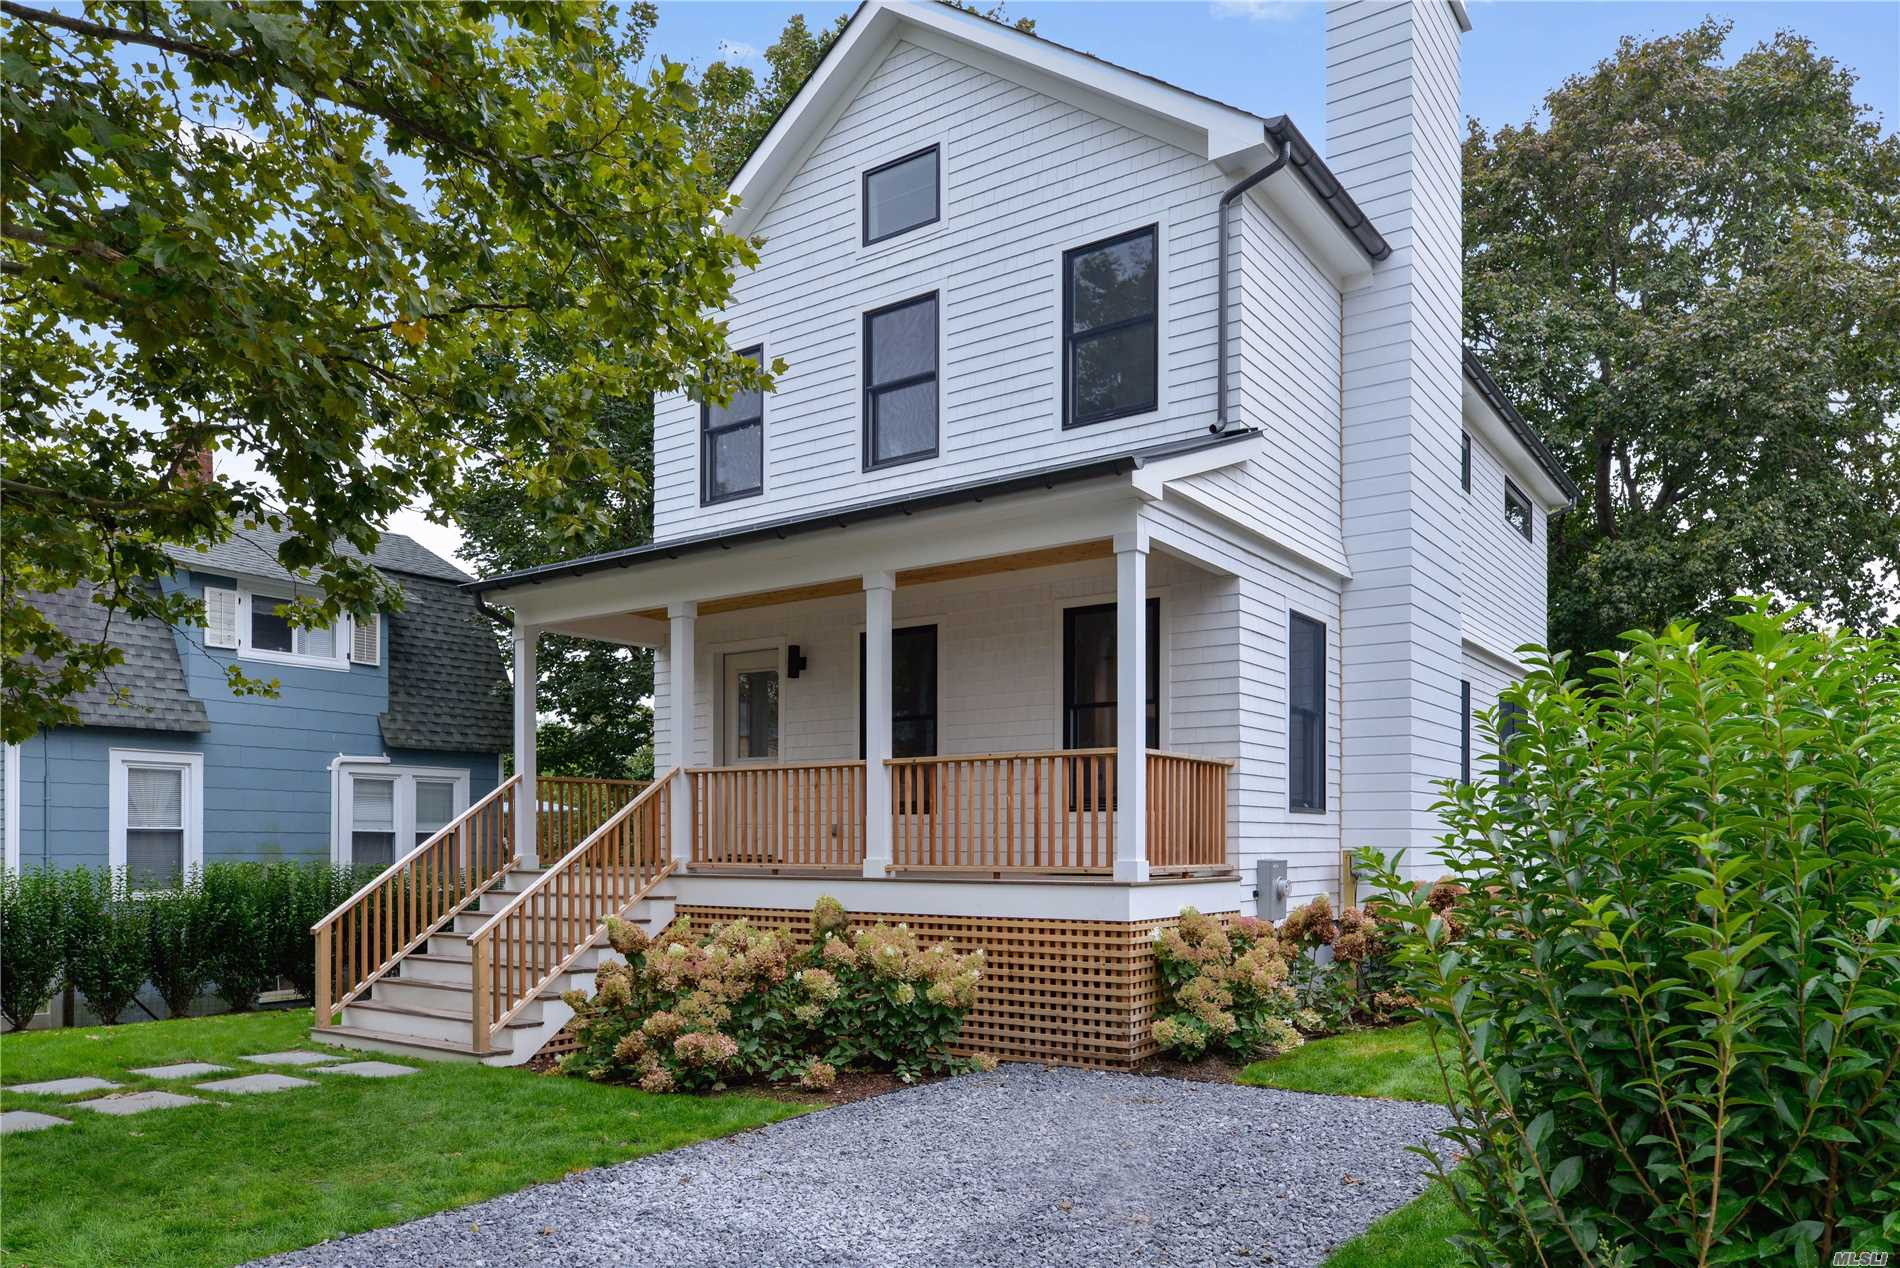 Stylish Newly Constructed Modern Farmhouse Located In The Heart Of The Historic Maritime Village Of Greenport. Open Floor Plan Encompassing The Living Room/Dining Area With Wood Burning Fireplace, Kitchen, Powder Room. Four Br, 3 1/2 Baths Including Master Suite With Private Bath. Spacious Kitchen With Custom Cabinets, Wine Fridge And Bertazonni Appliances. Close To All The Village Has To Offer - Fine Dining, Shops, Harbor Front, Hampton Jitney And Lirr. New Construction - Taxes Estimated